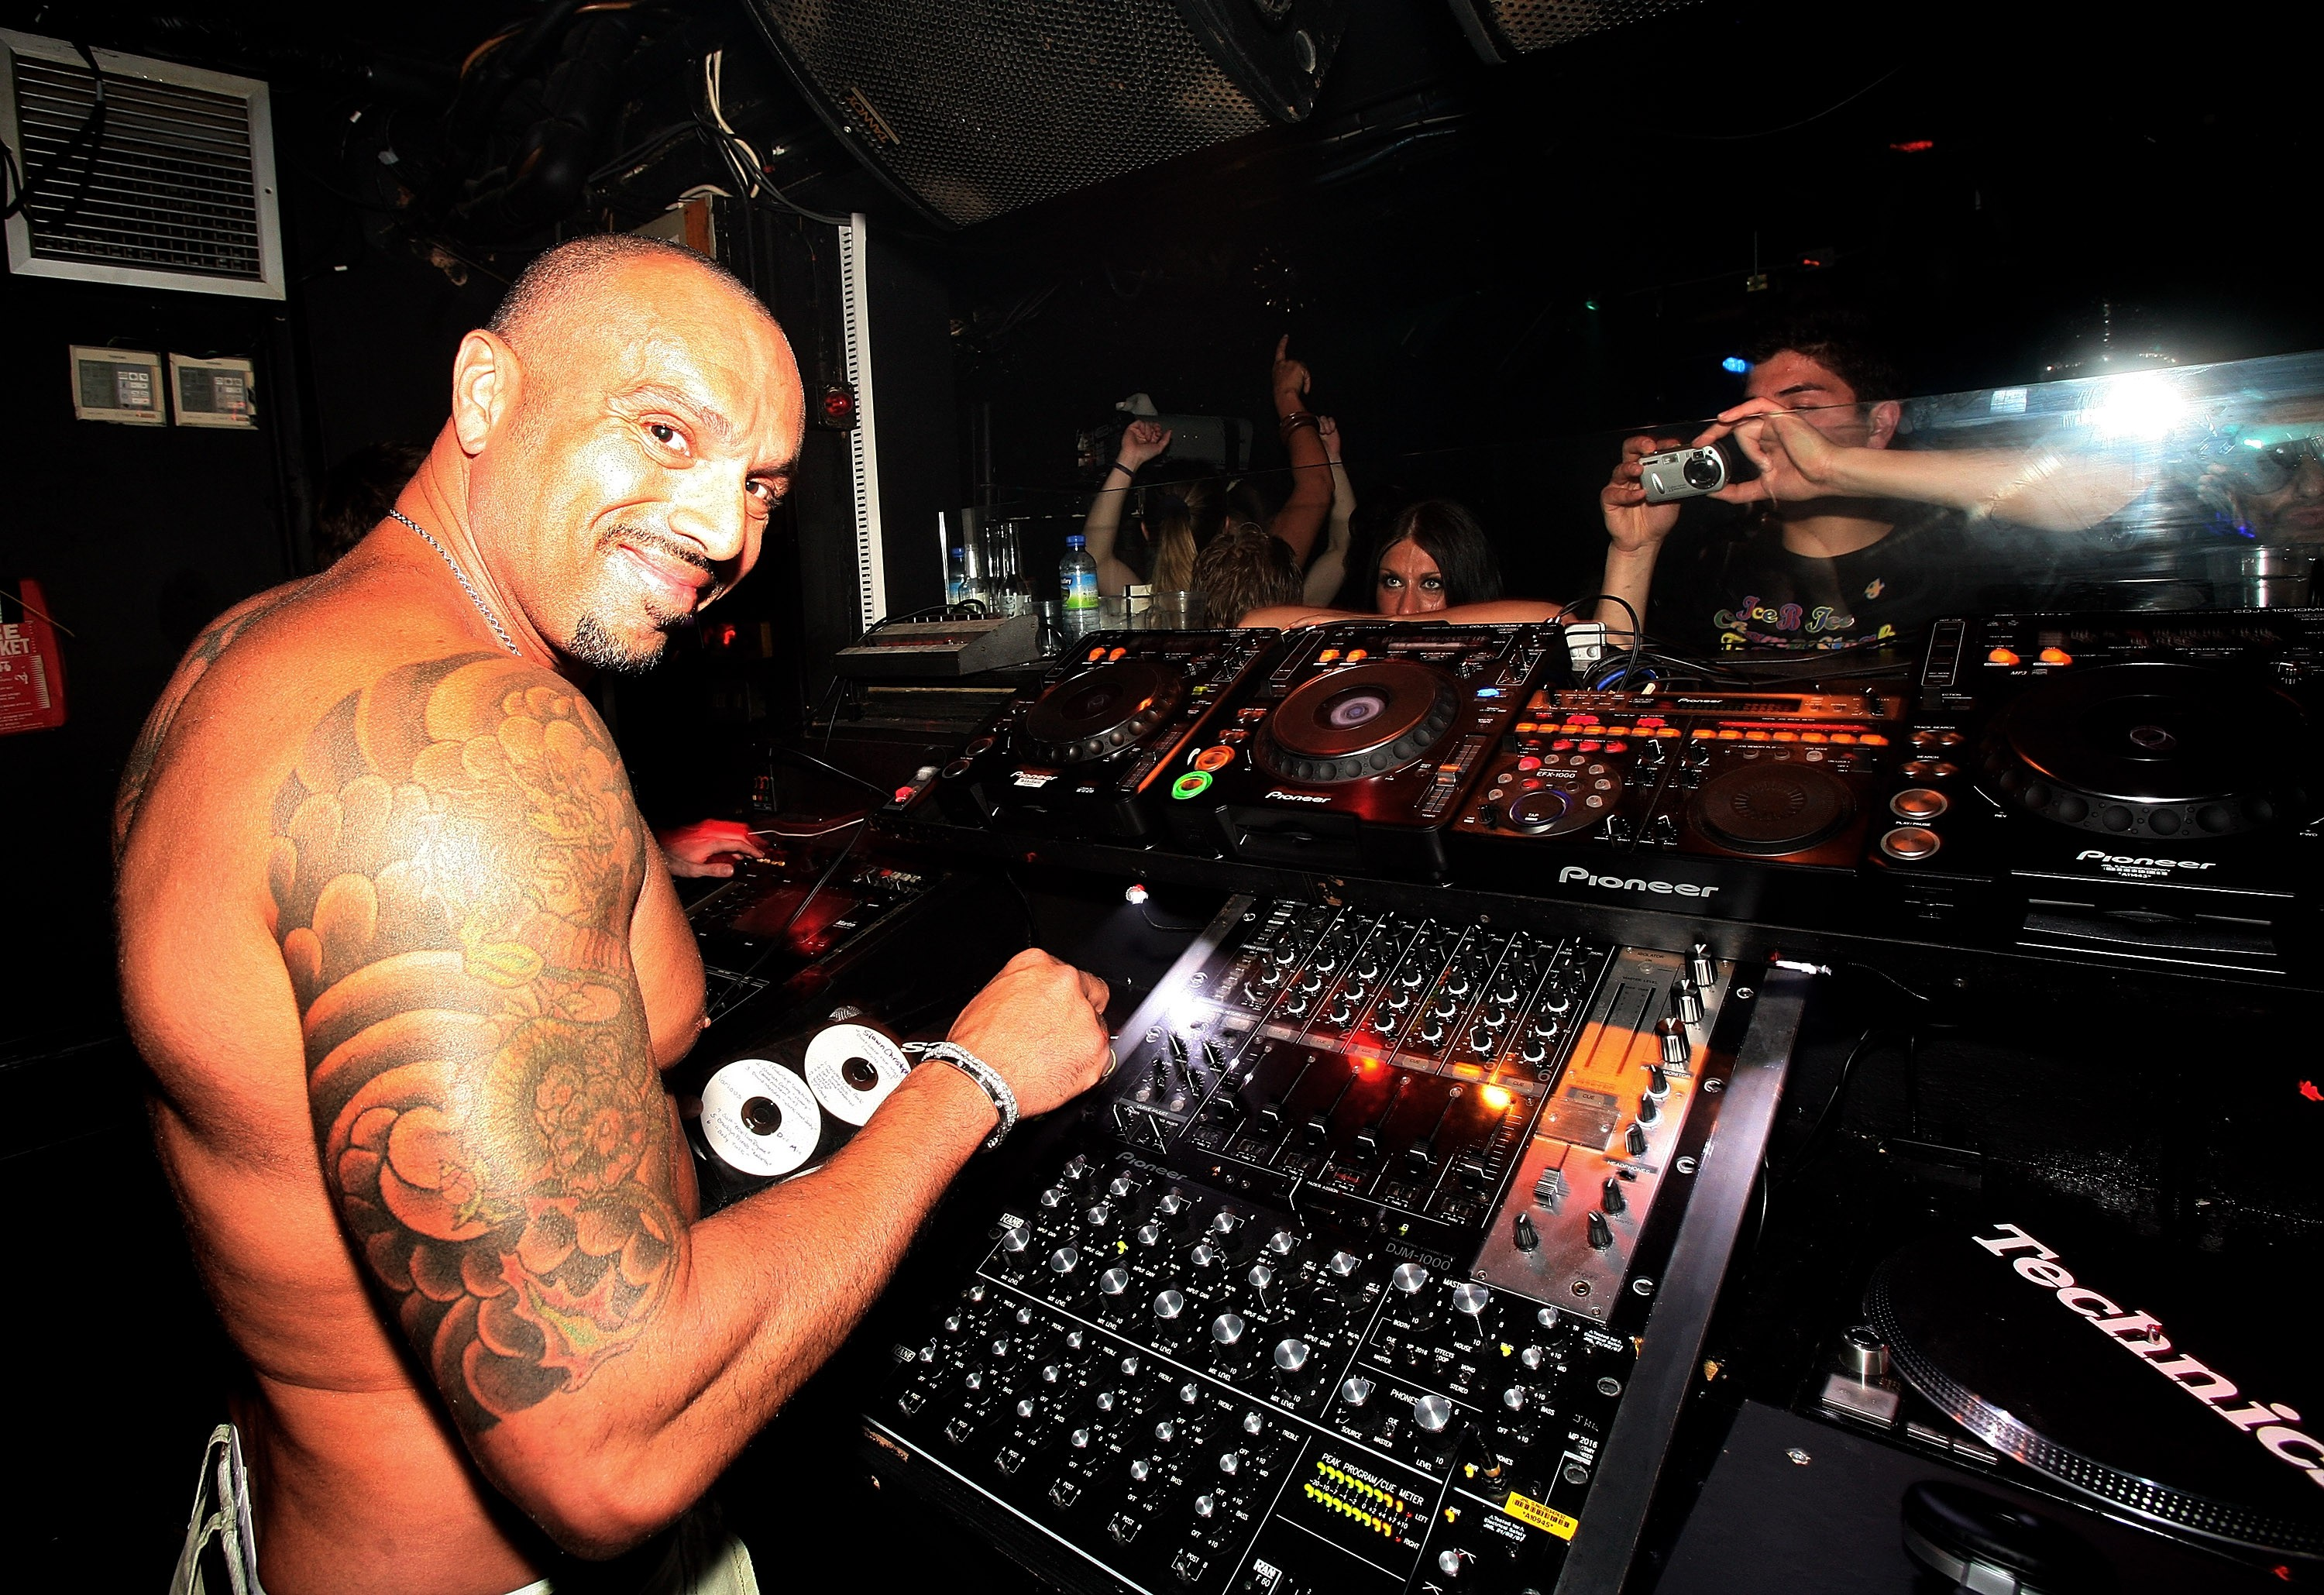 O DJ David Morales foi preso no Japão (Foto: Getty Images)